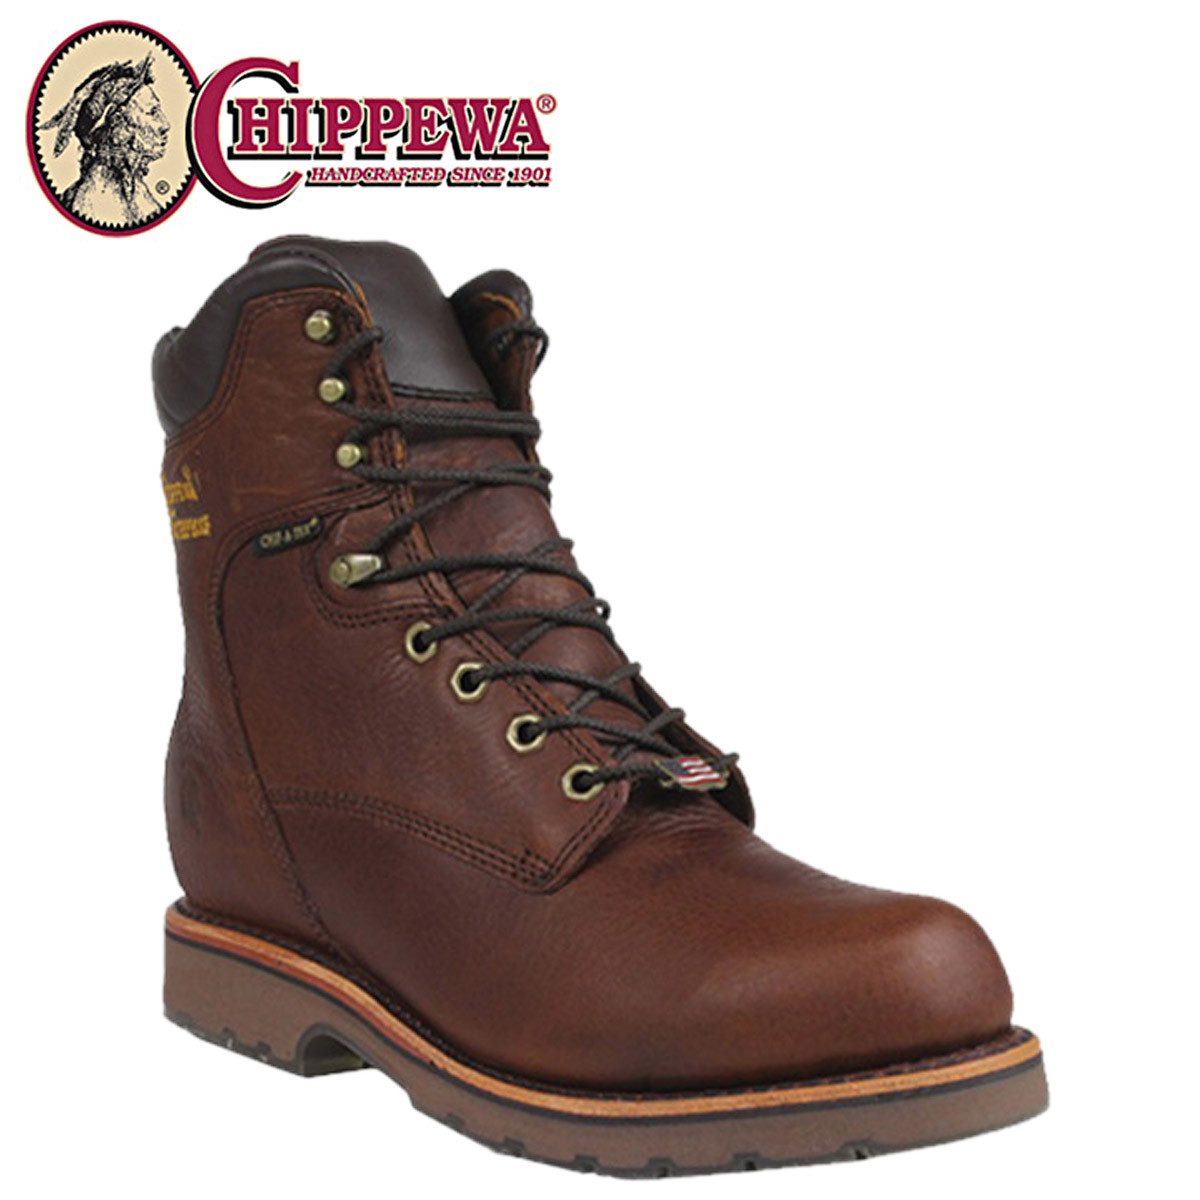 ALLSPORTS | Rakuten Global Market: Chippewa CHIPPEWA 8 inch work boots [Tan  TAN WATERPROOF, 25225 8 TAN D y EE wise leather men's waterproof